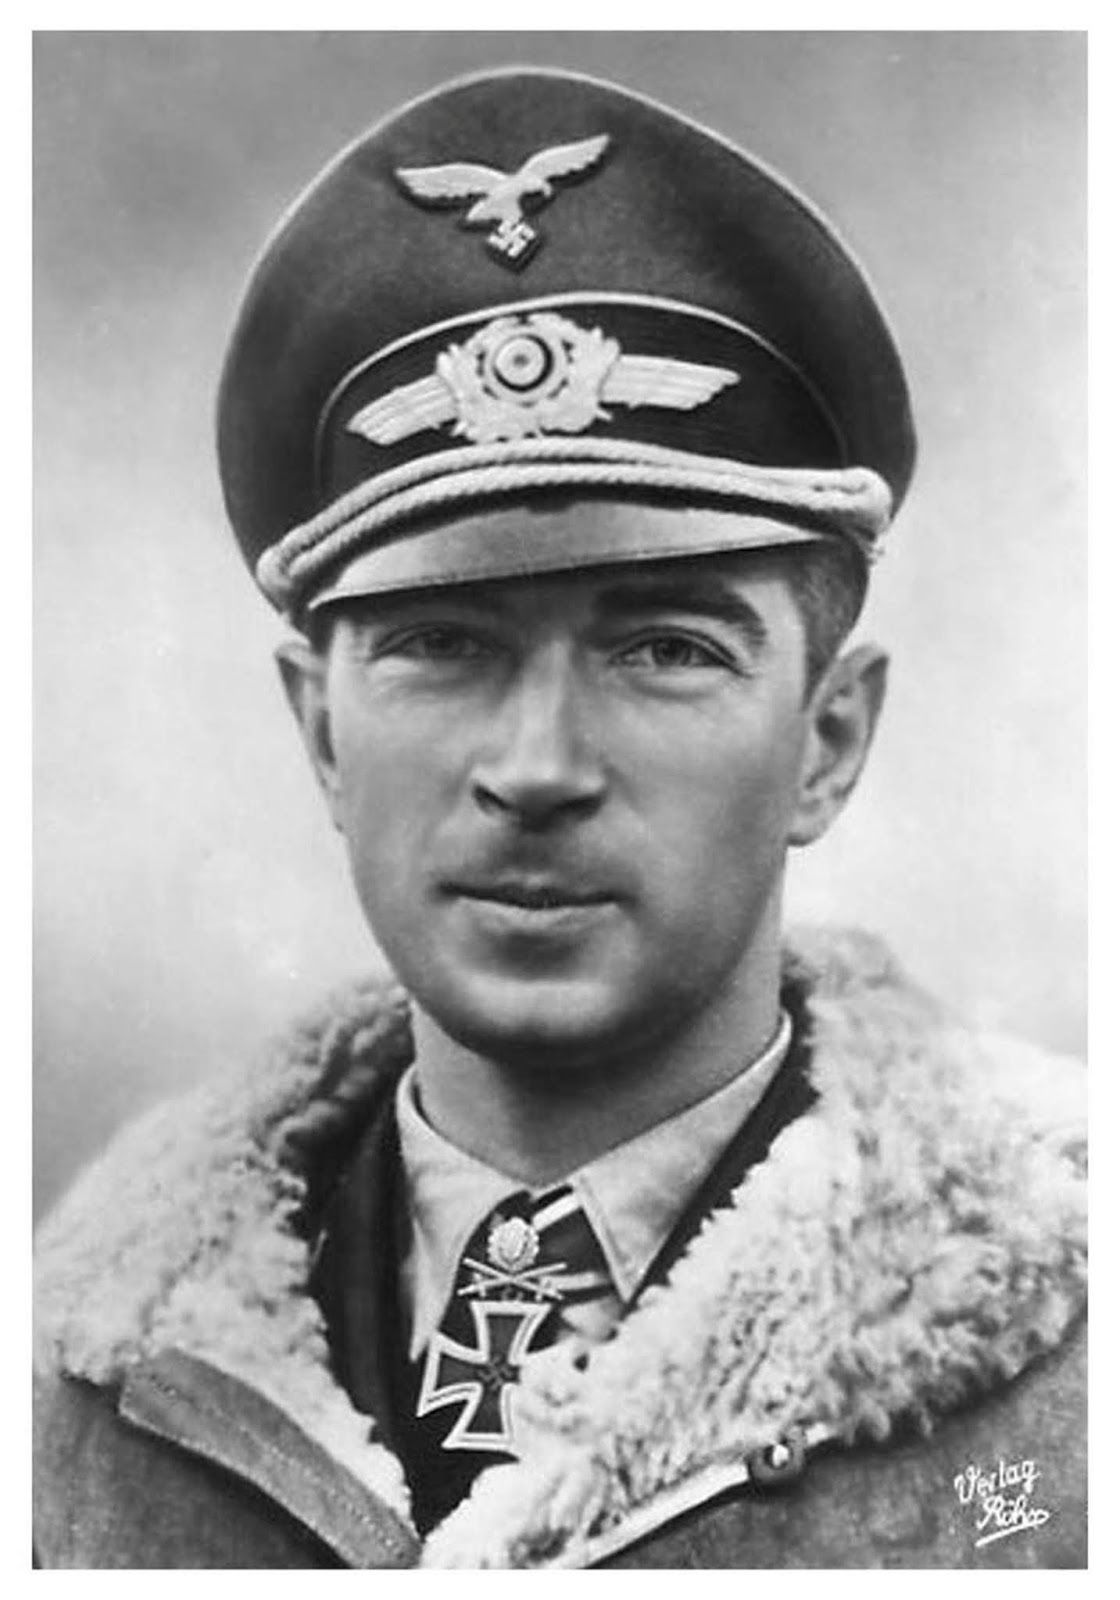 Werner Mölders led the Luftwaffe in victories during the Battle of Britain. Werner got along great with everyone and rose to command the Reich's fighter forces. He also knew how to wear a bomber jacket with style, and soften it with that puckish grin.